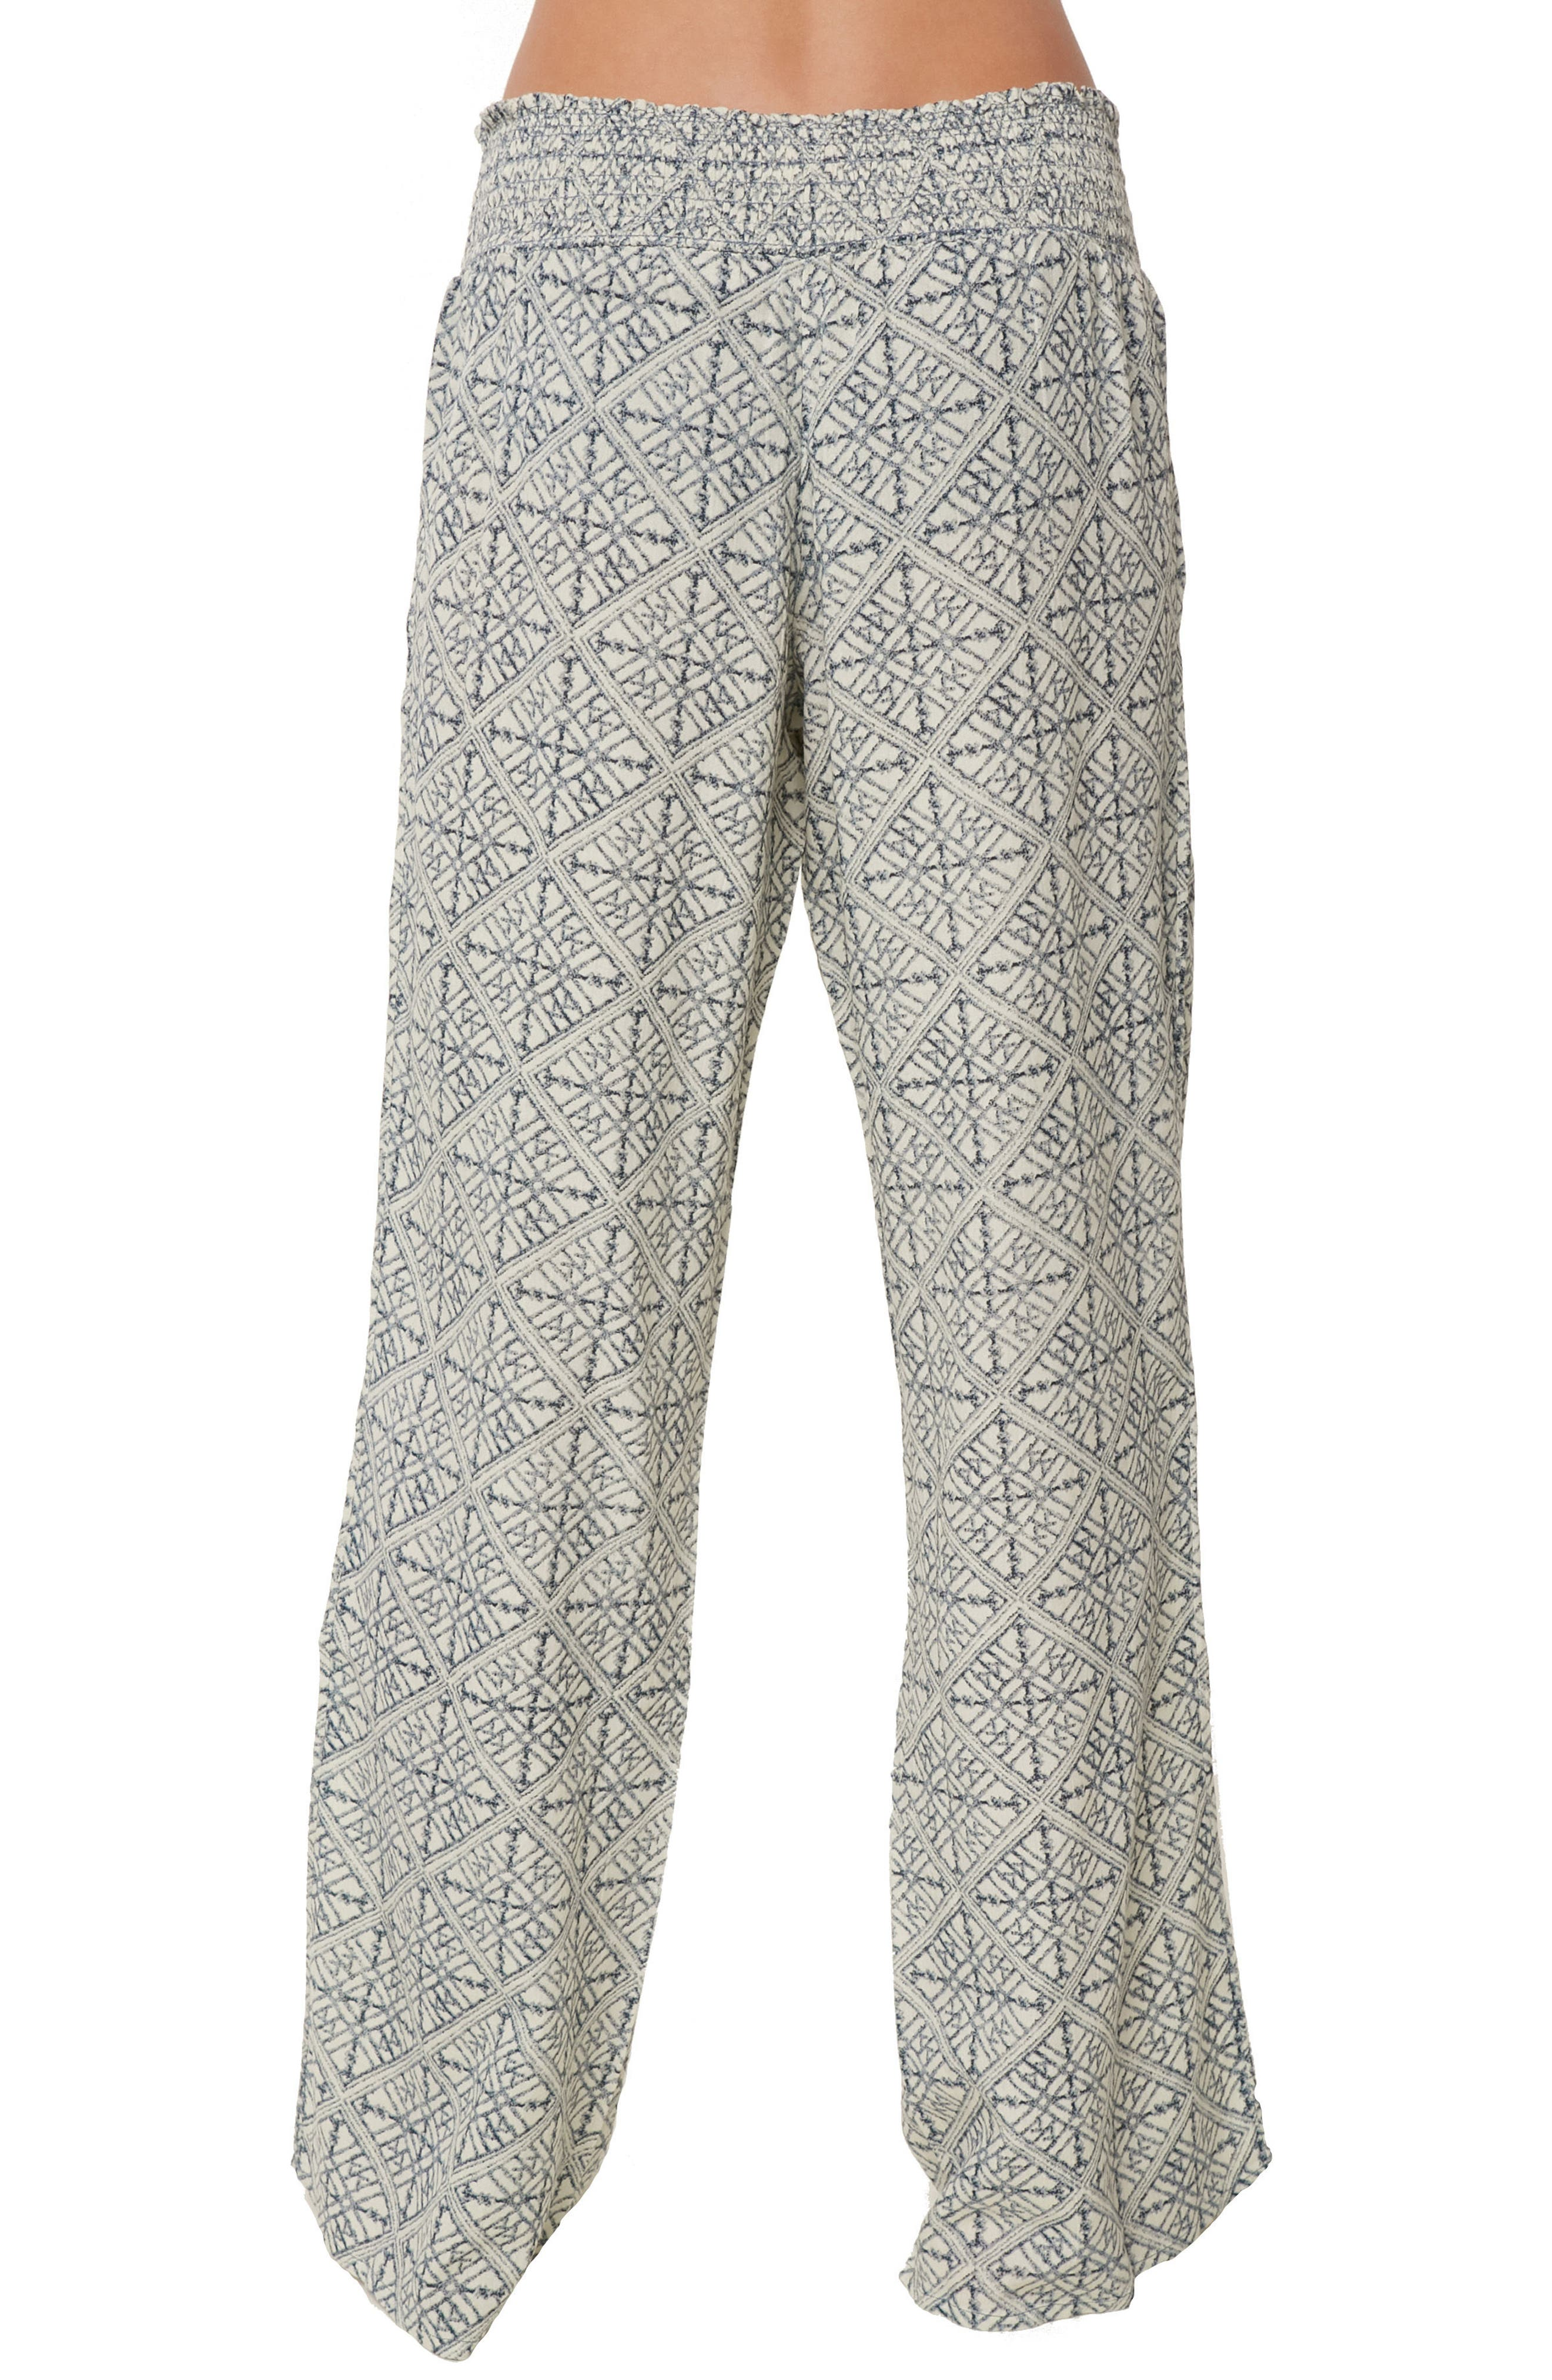 Joanna Geo Print Pants,                             Alternate thumbnail 4, color,                             EVENTIDE